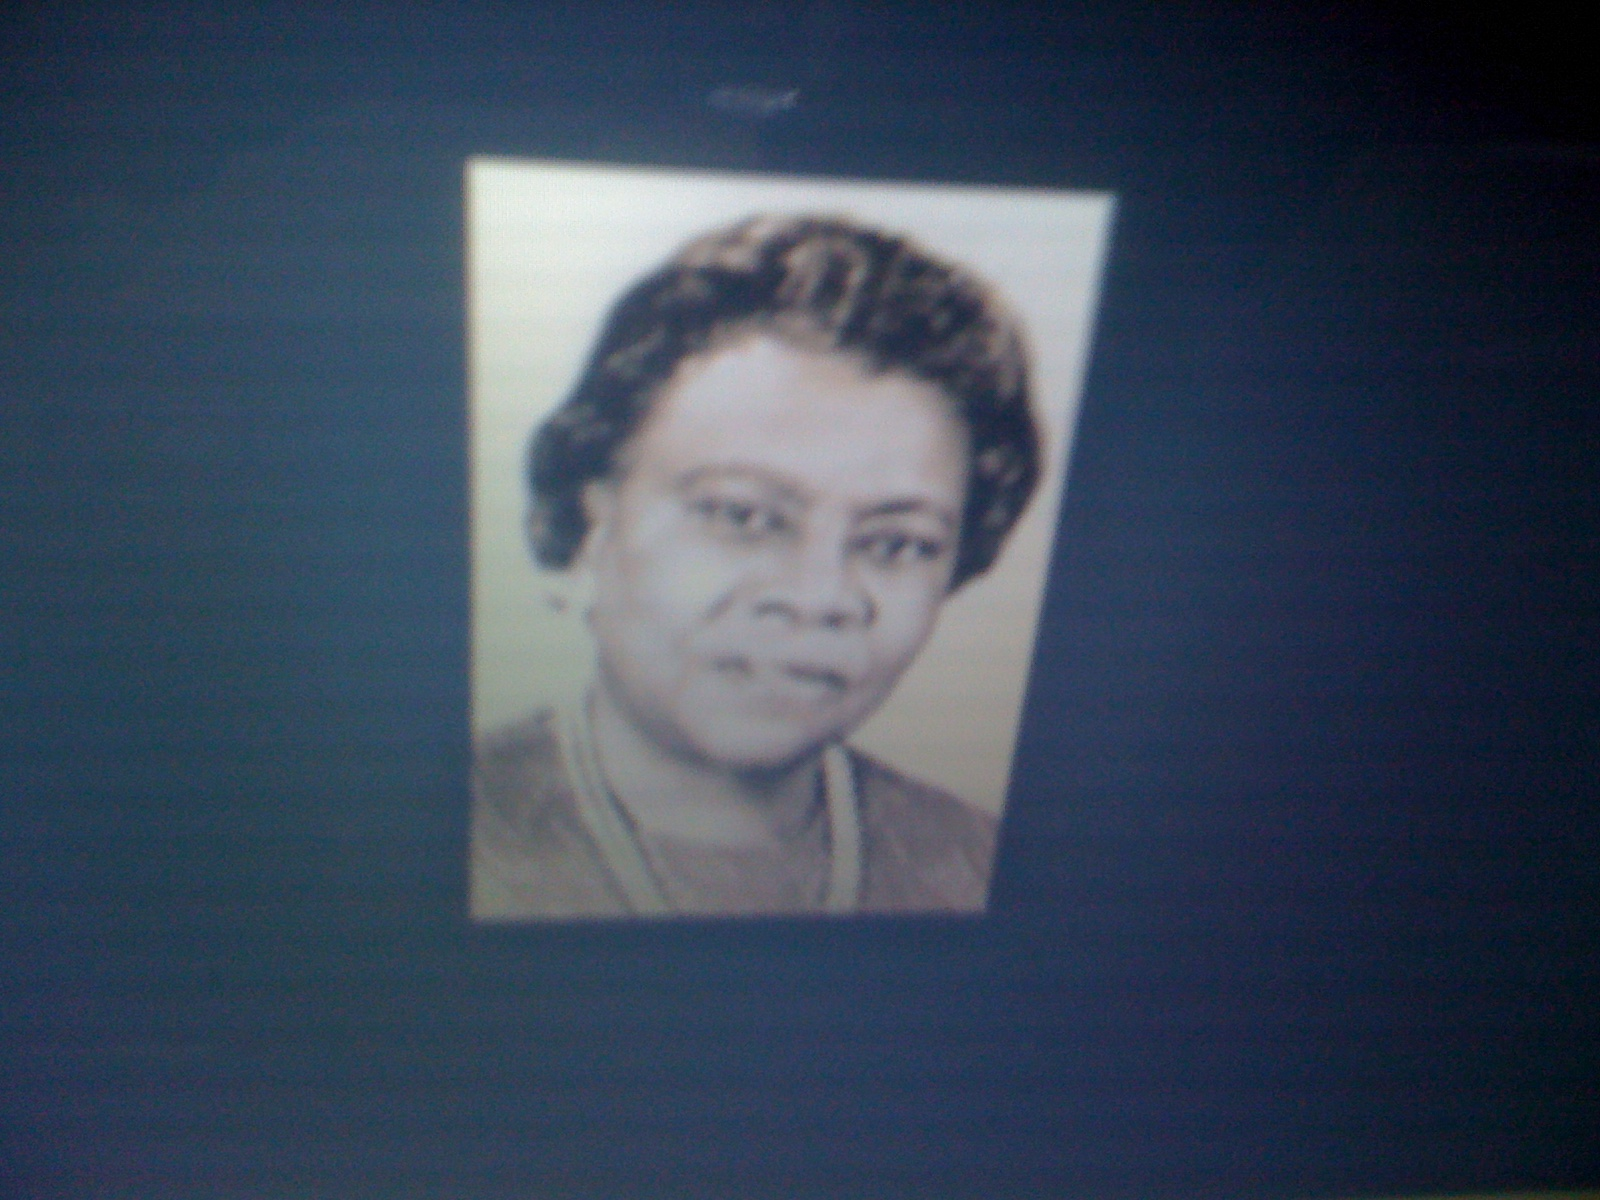 what was marjorie lee brownes thesis The first black women to be awarded math phds were marjorie lee browne (at michigan under gy rainich) and evelyn boyd granville (at yale under einar hille), both in 1949 ``it should be noted,'' vivienne.